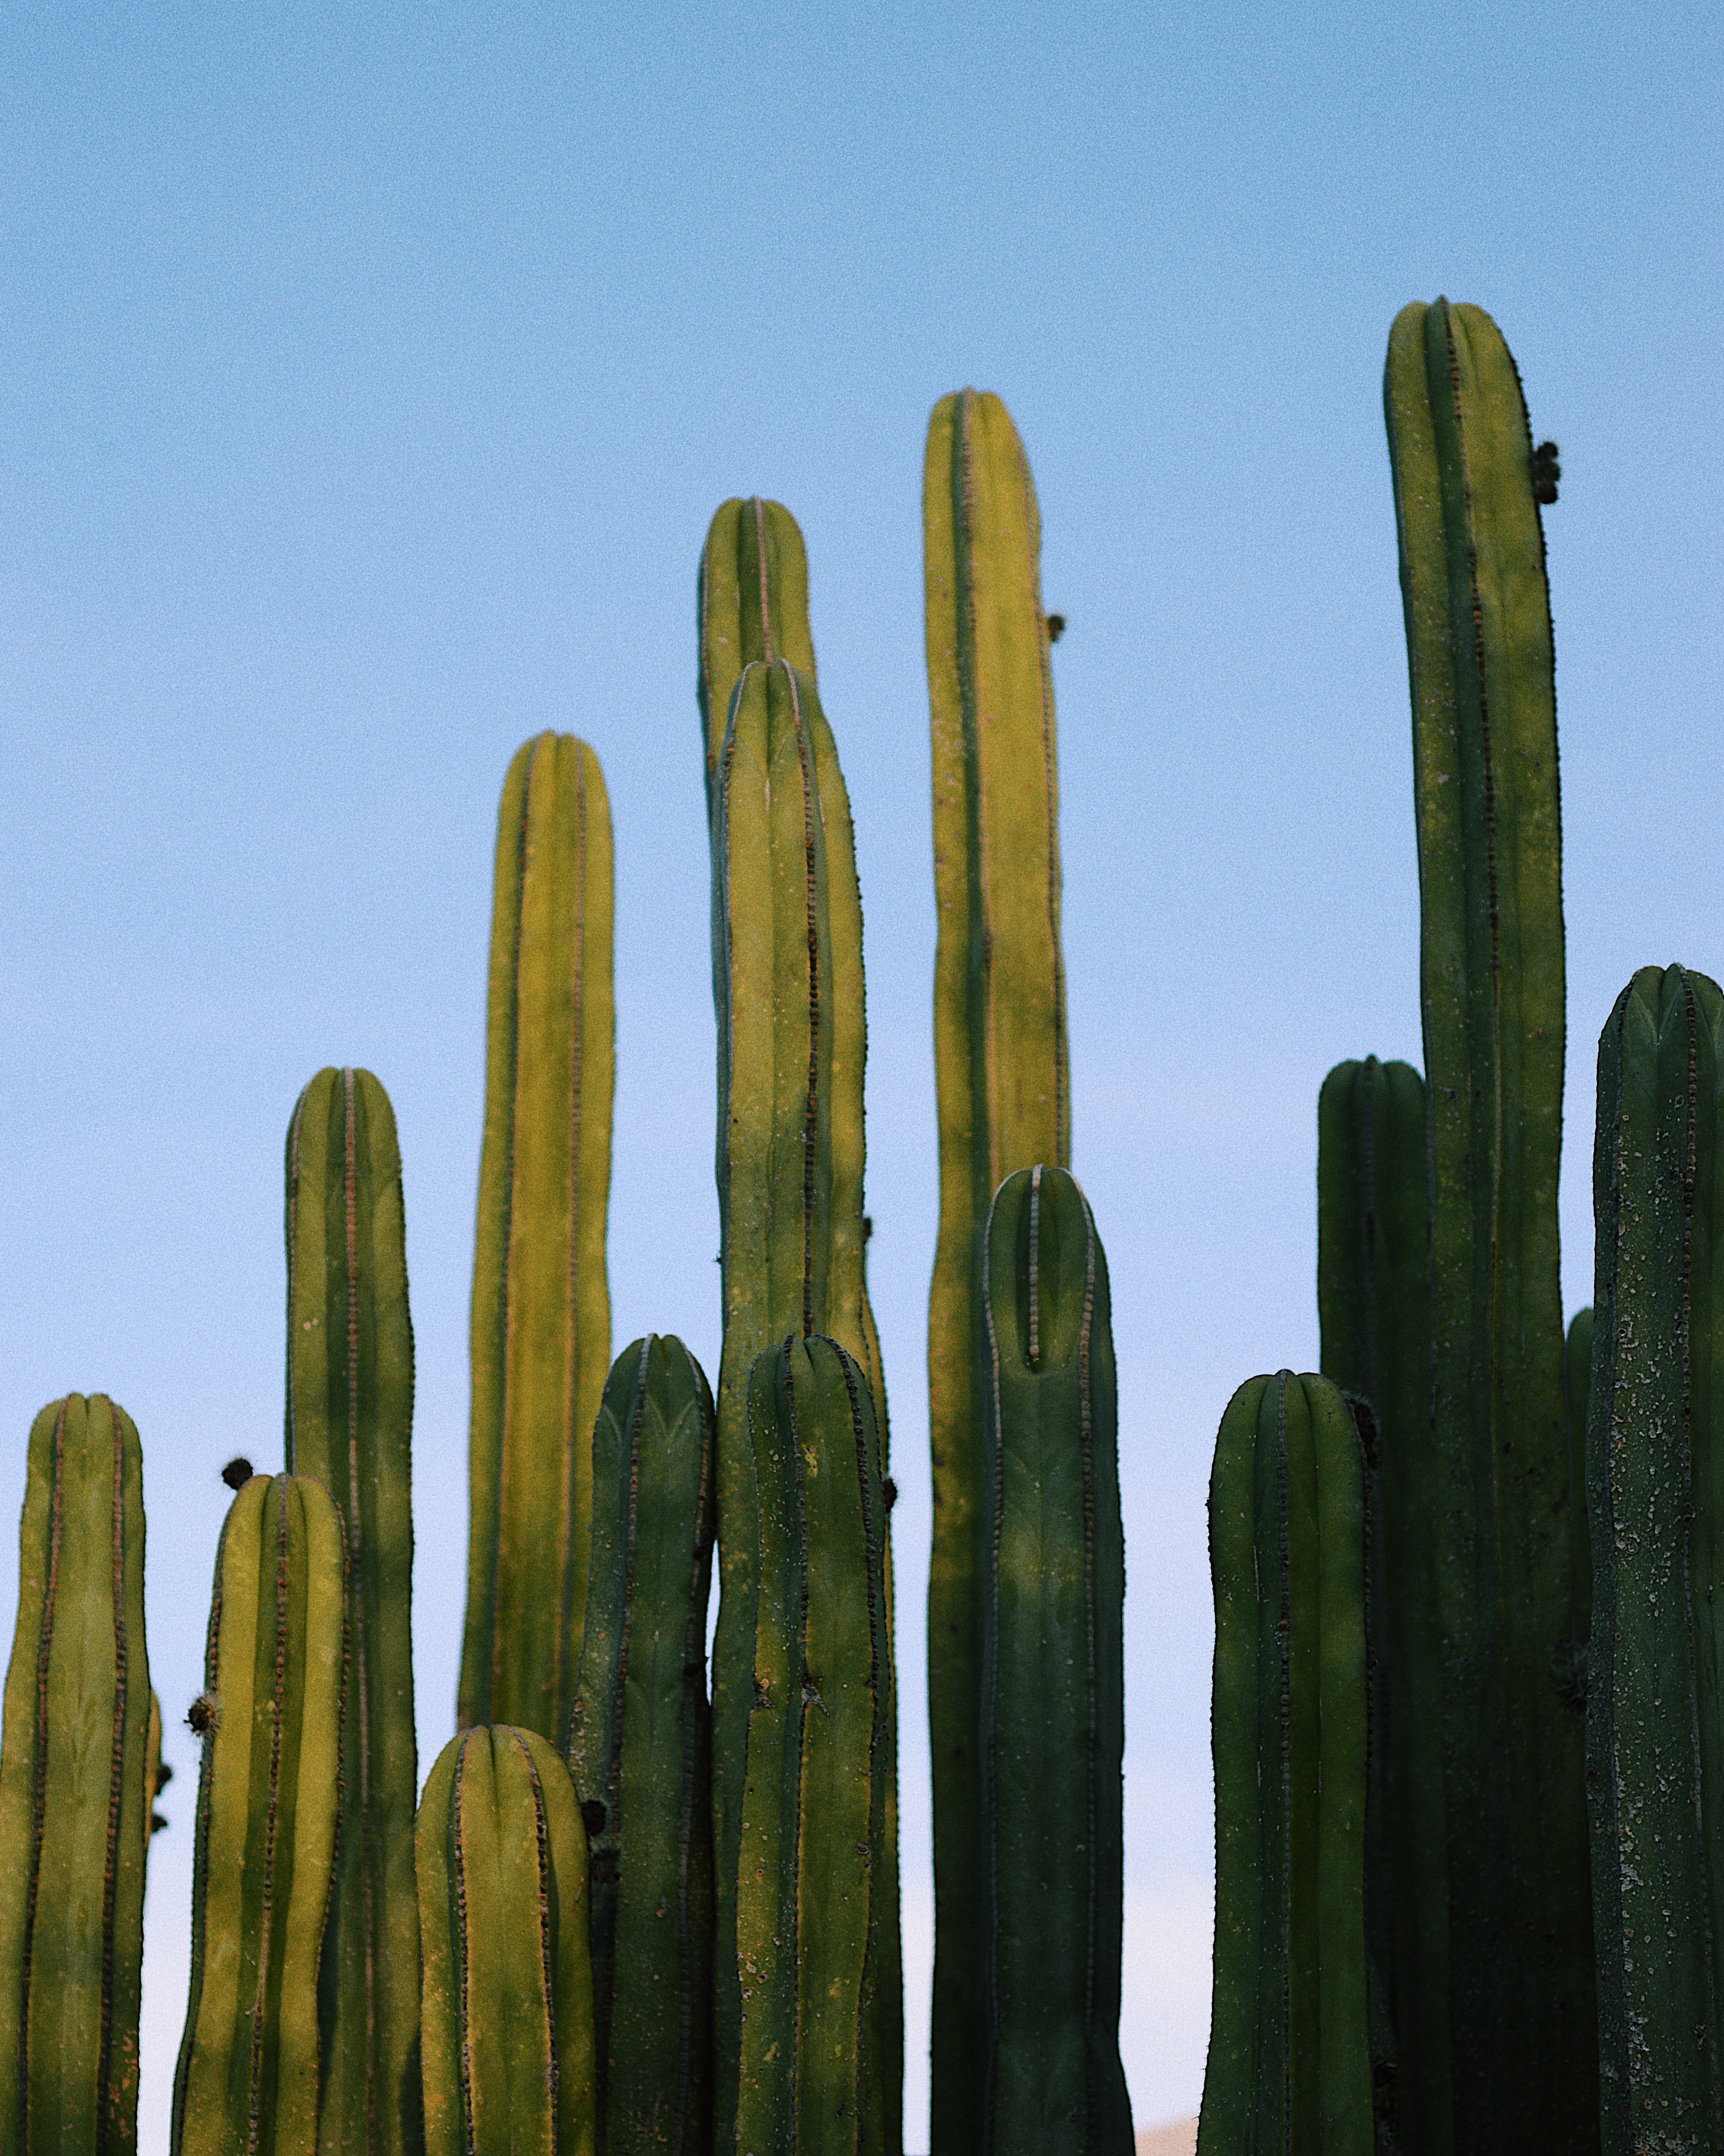 green cactus under blue sky at daytime